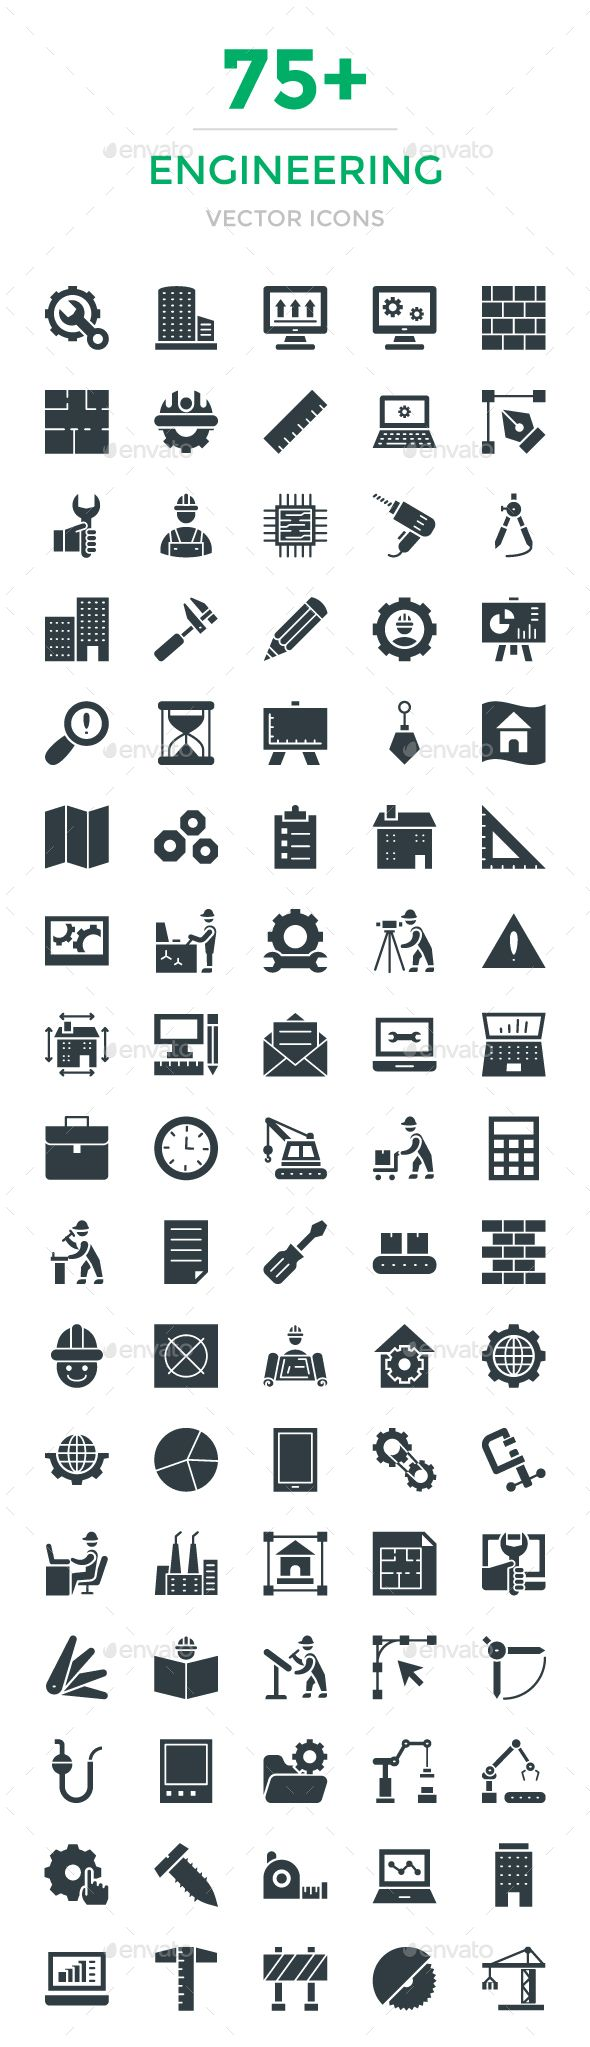 75+ Engineering Vector Icons. Download here: https://graphicriver.net/item/75-engineering-vector-icons/16916642?ref=ksioks